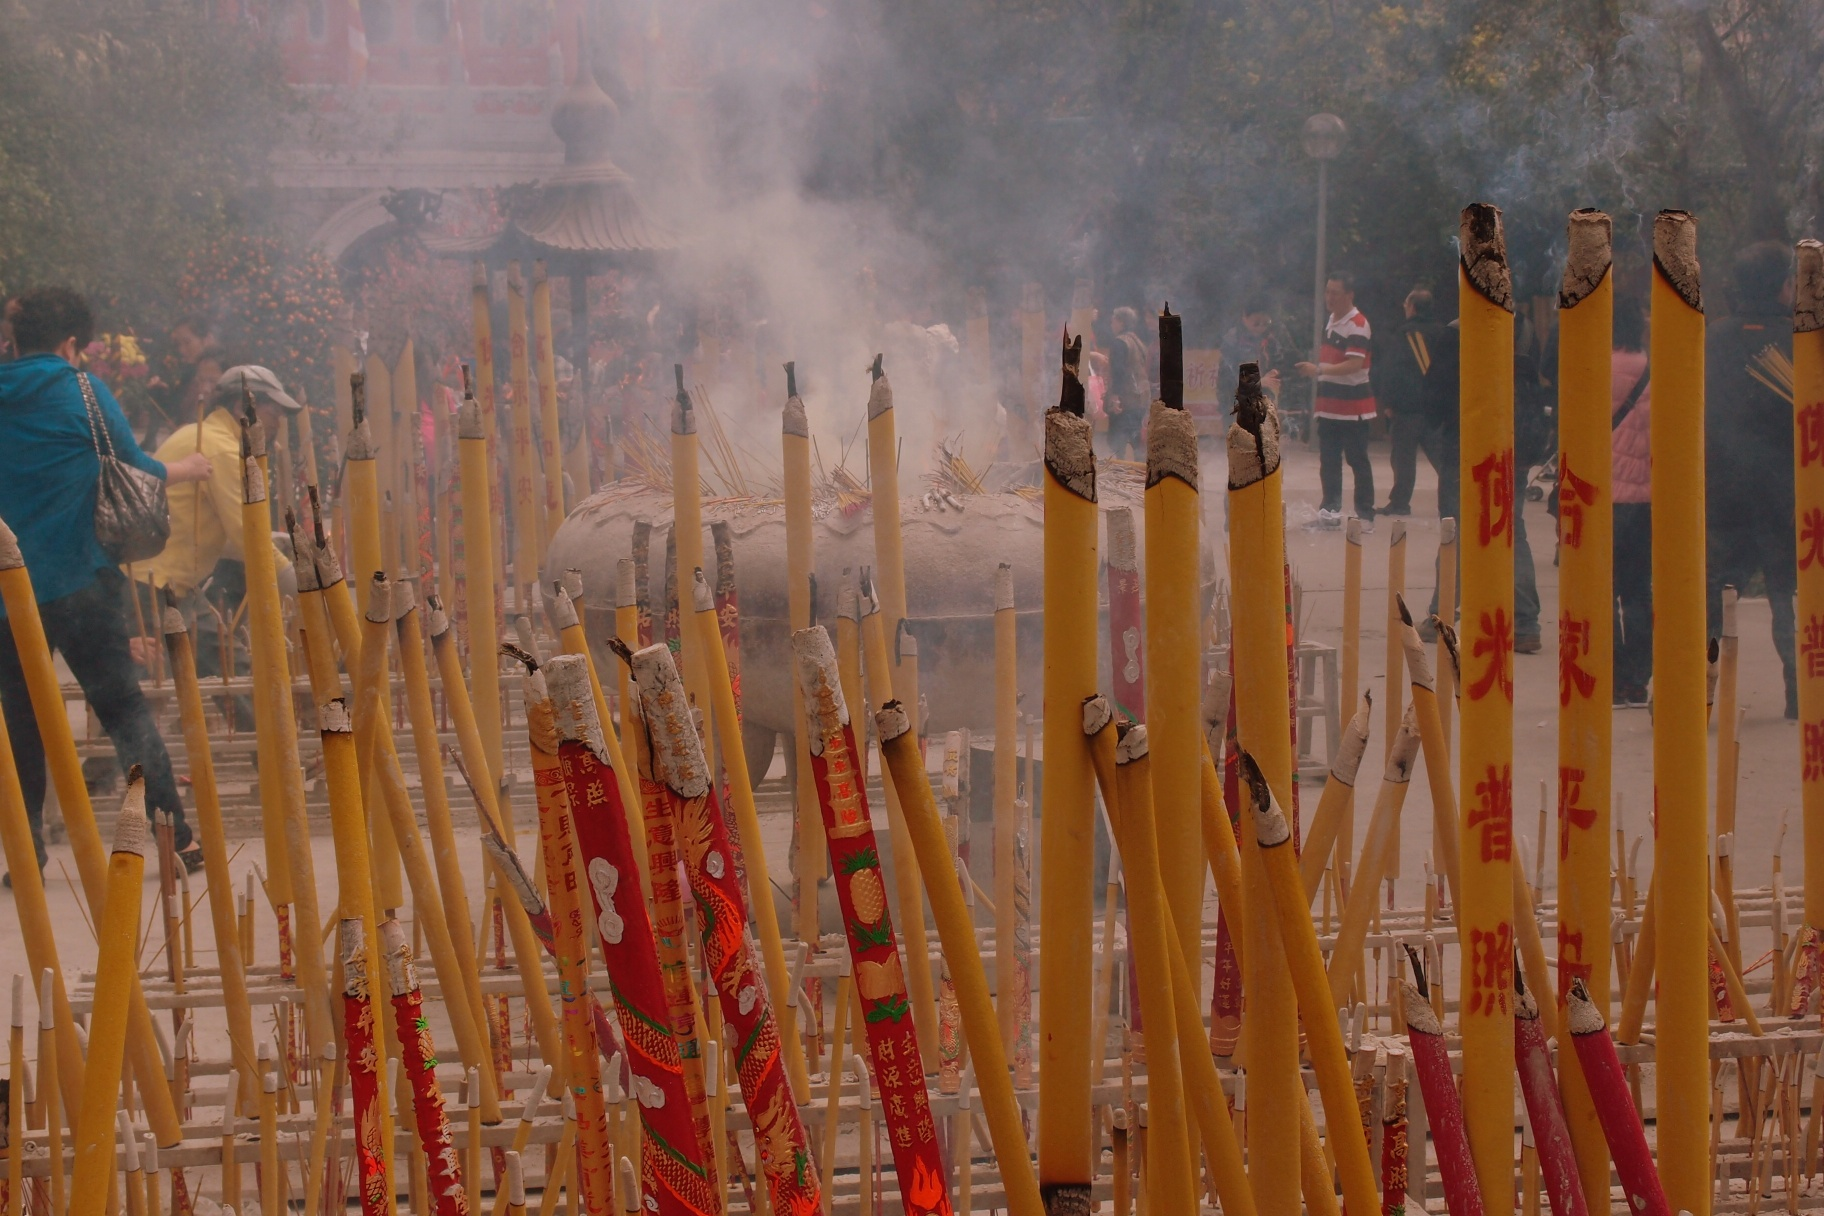 They take incense burning up here very seriously